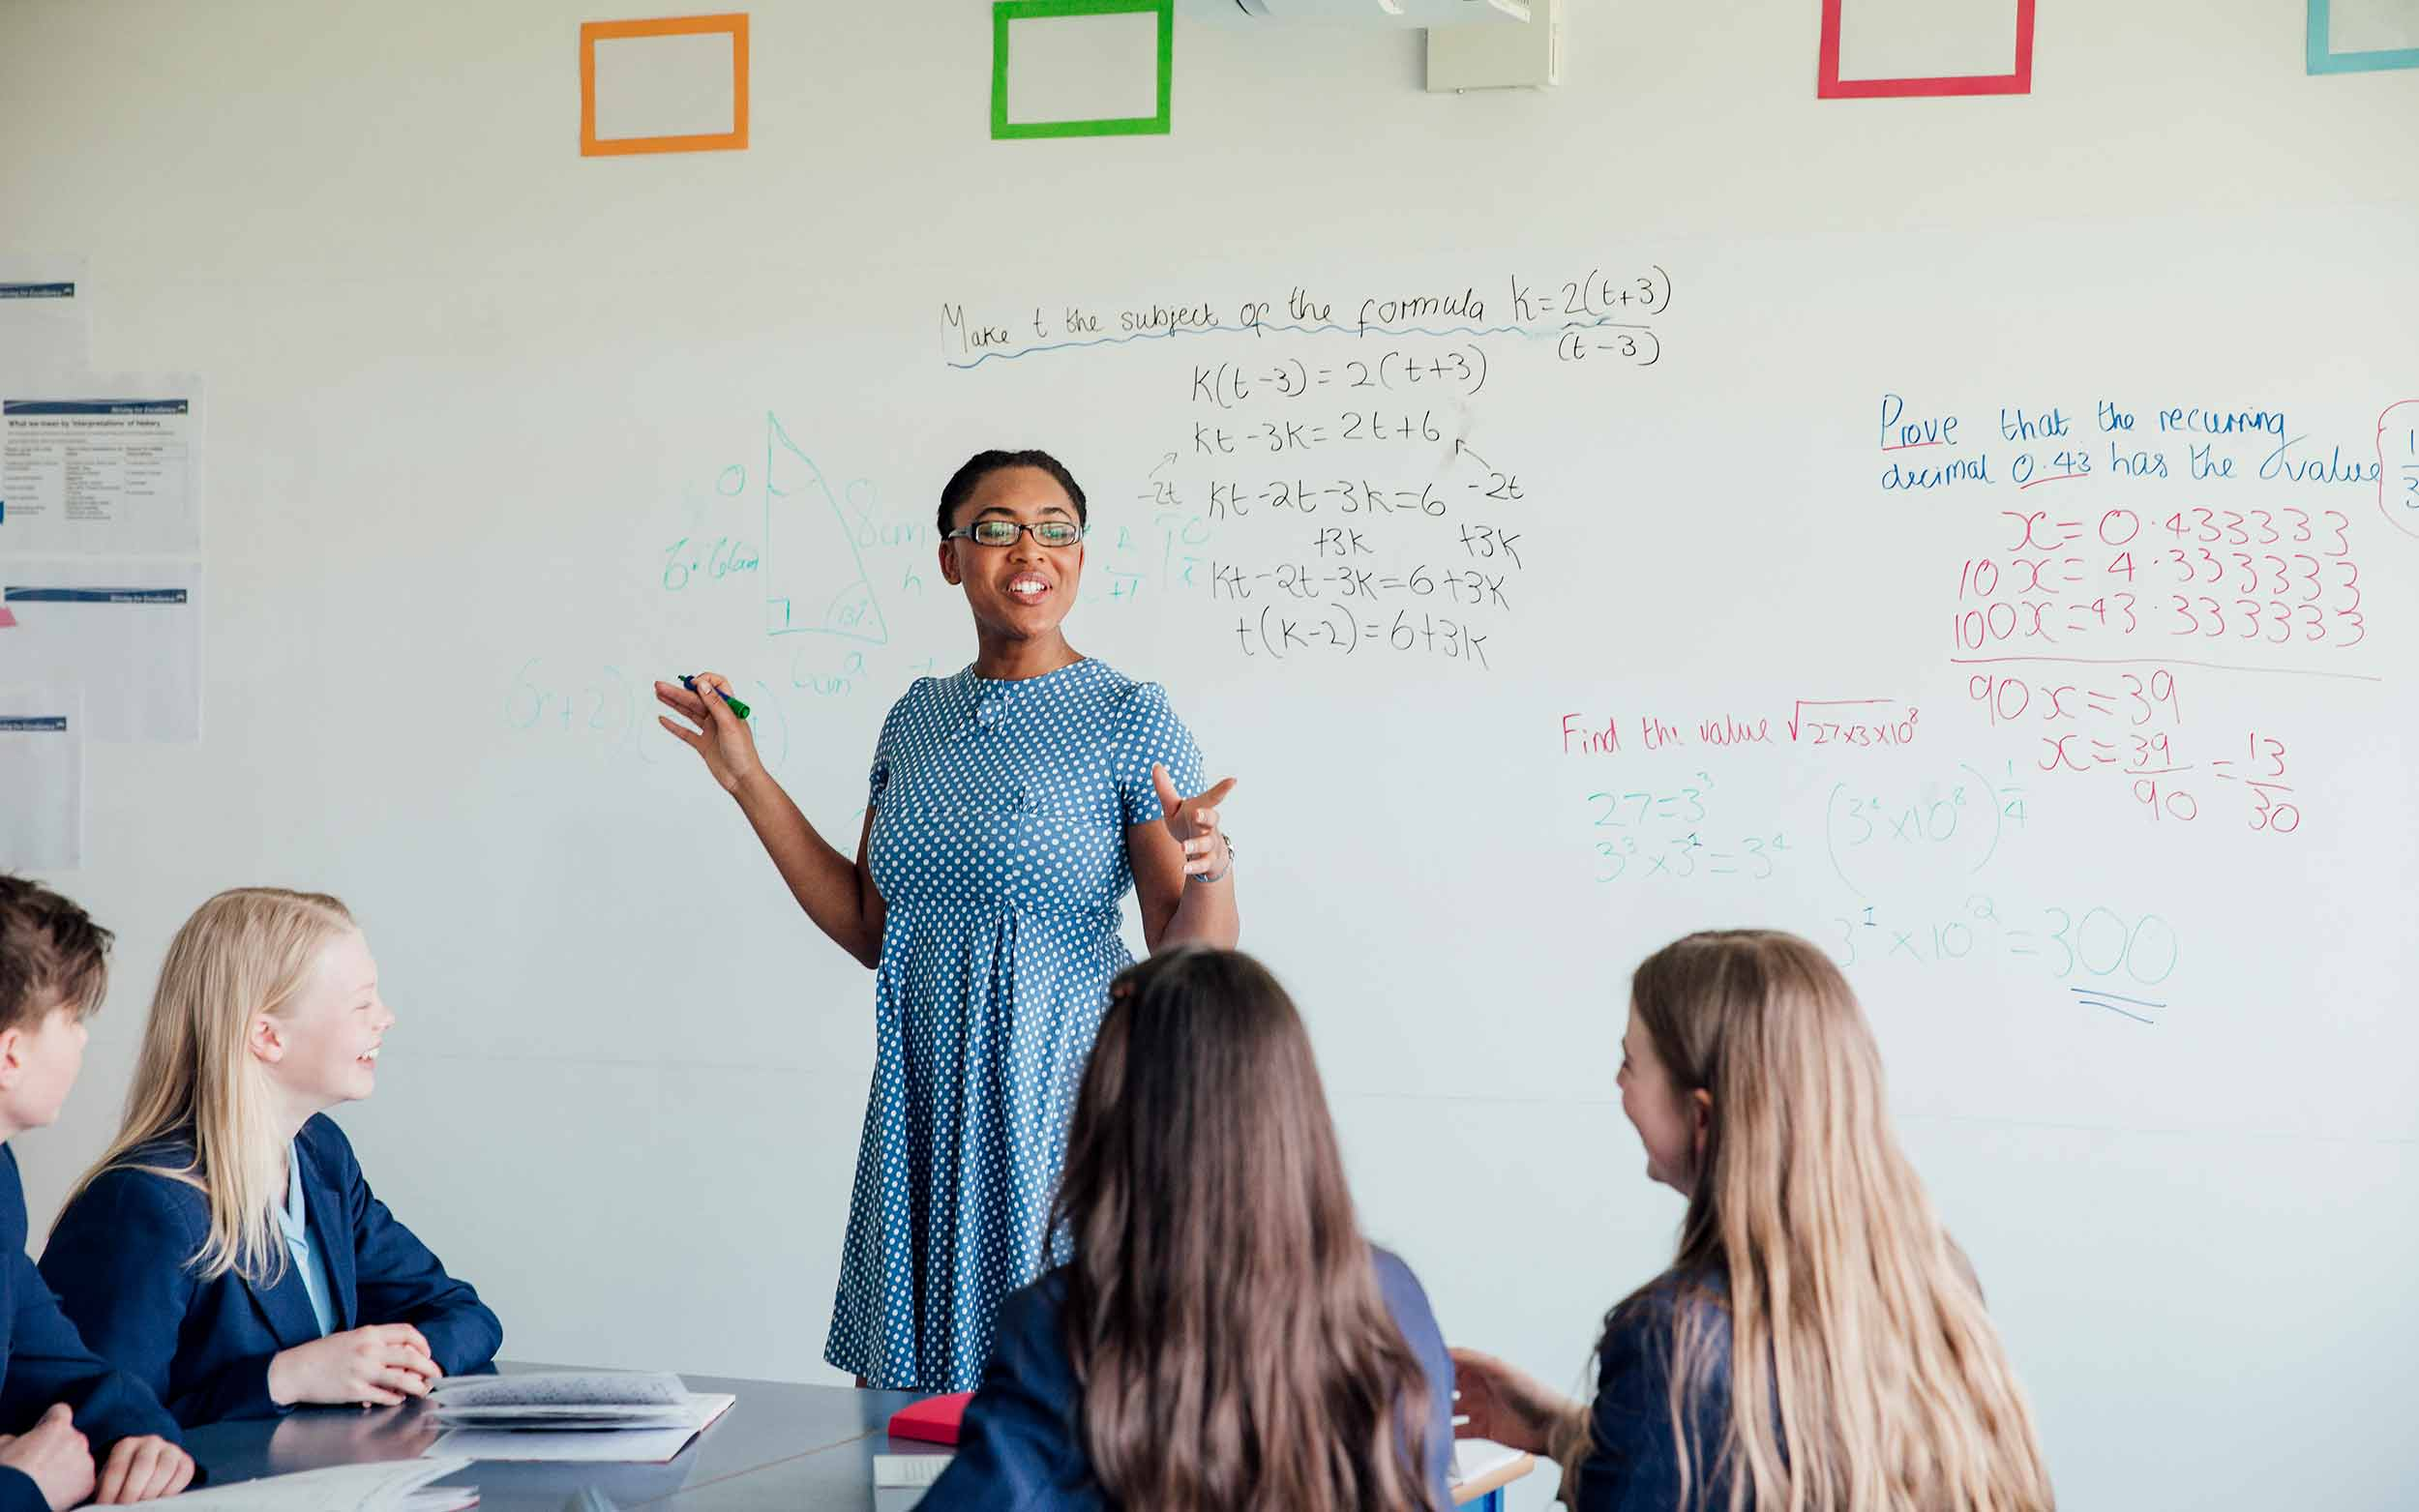 Female teacher in front of whiteboard and class